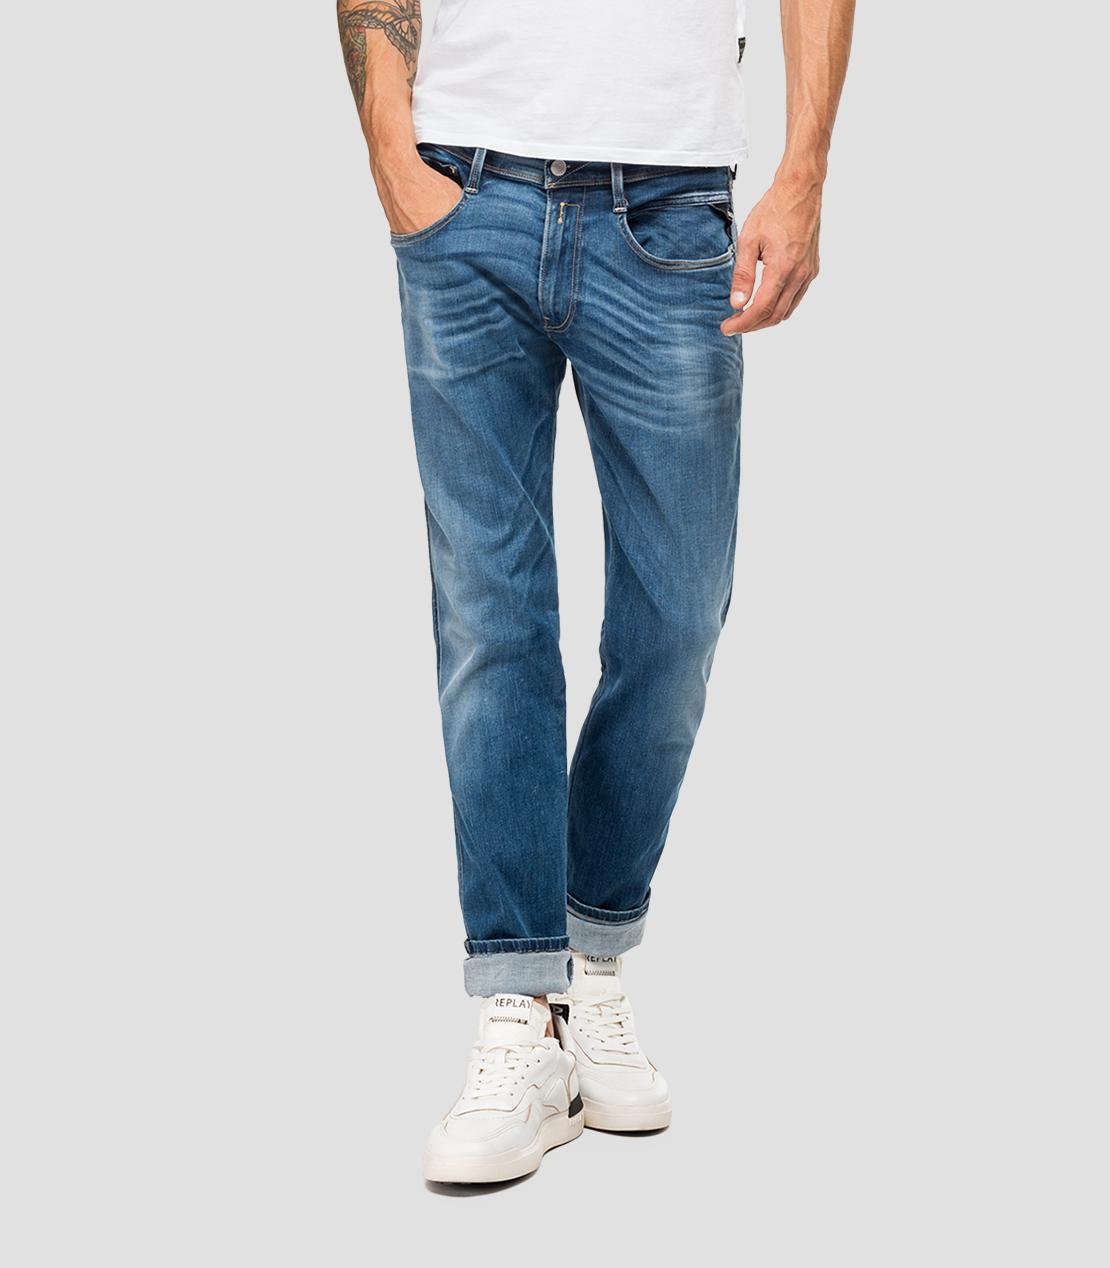 Hyperflex Bio Light Wash Jeans